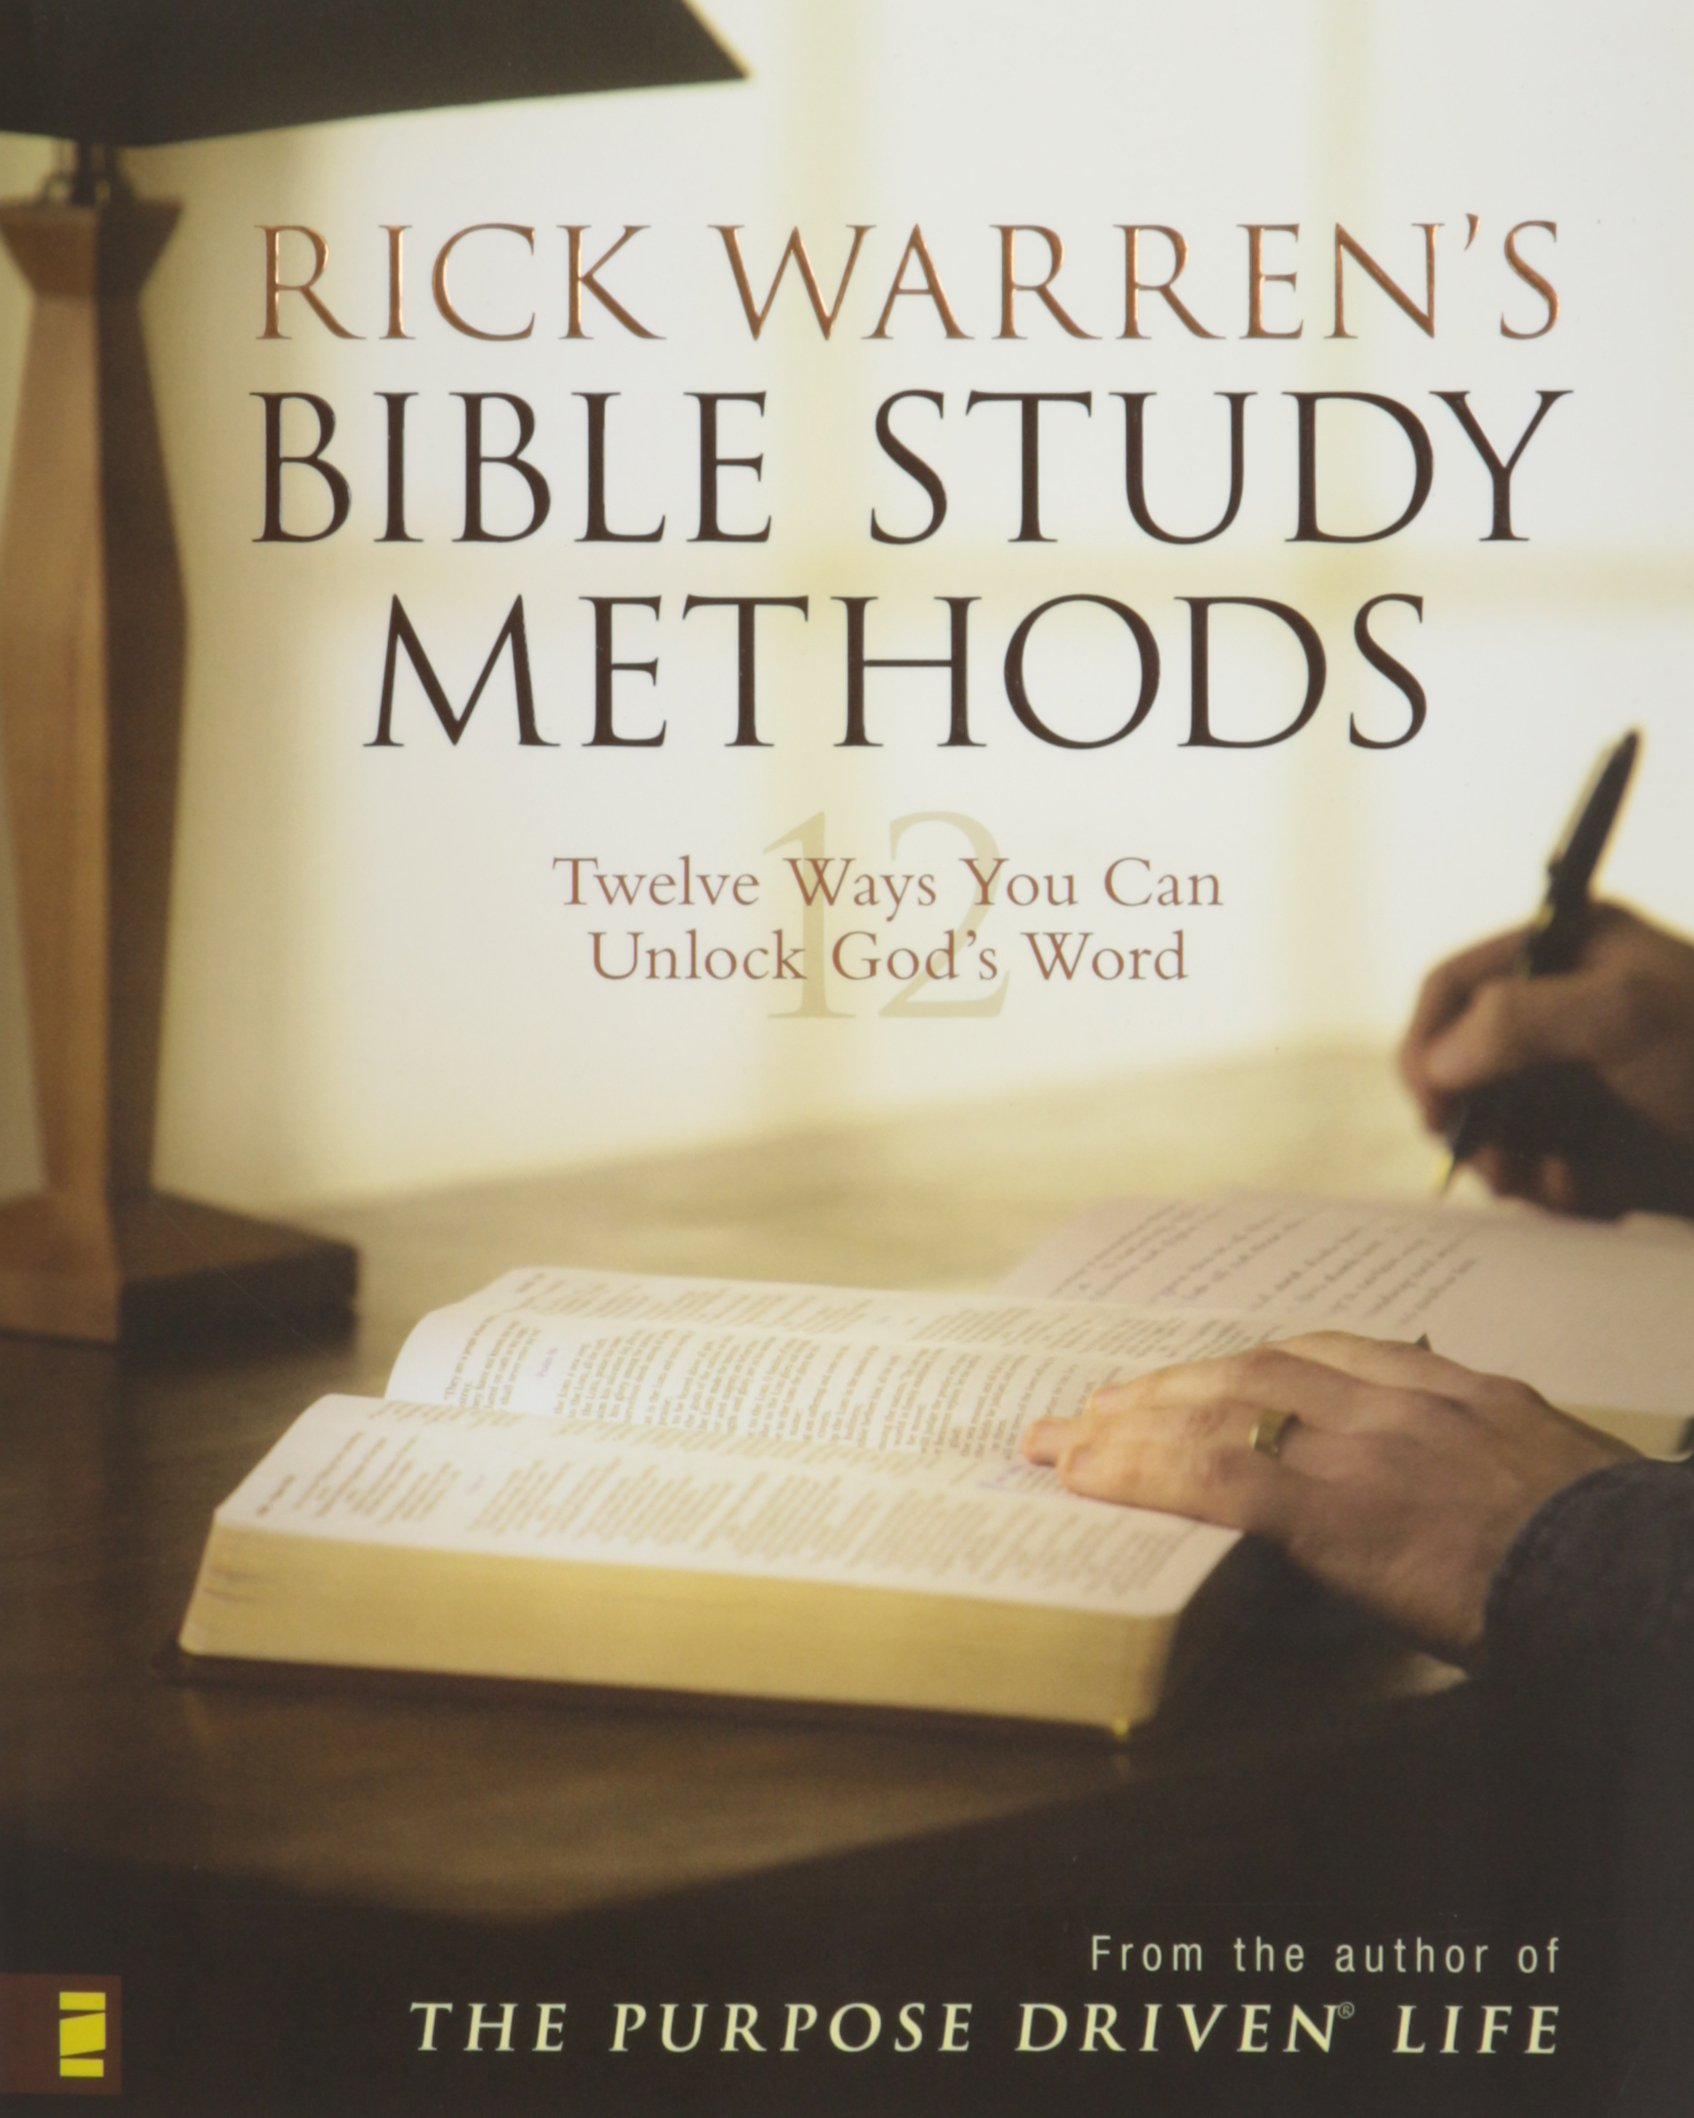 rick warren u0027s bible study methods rick warren 9780310273004